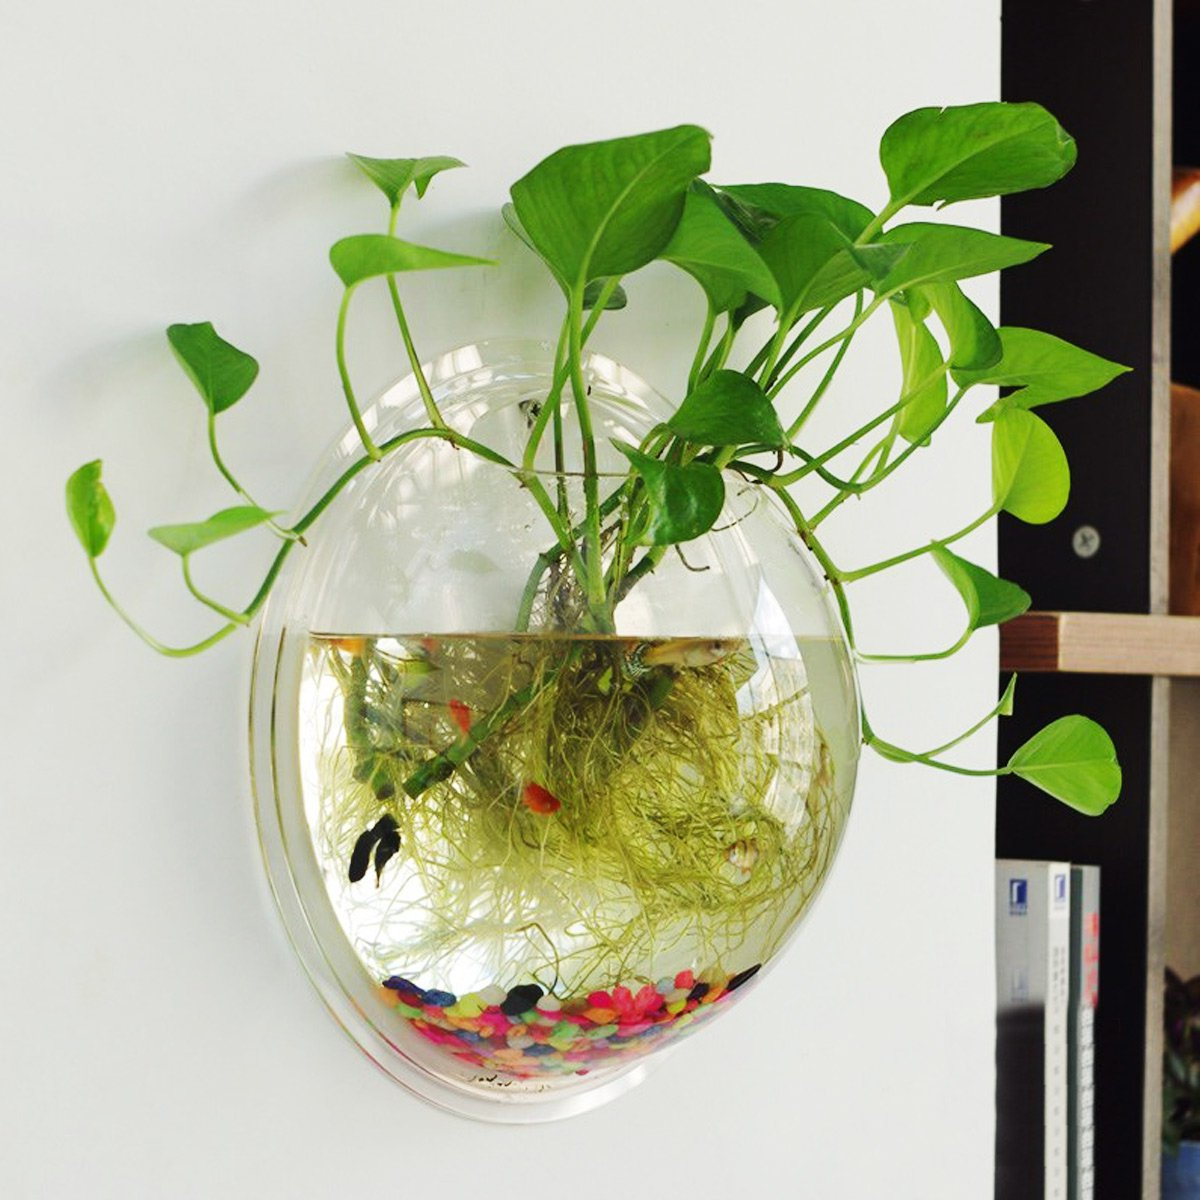 Most Current Amazon : Saim Aquarium Flower Plant Vase Home Wall Decor Clear With Vase And Bowl Wall Decor (Gallery 12 of 20)